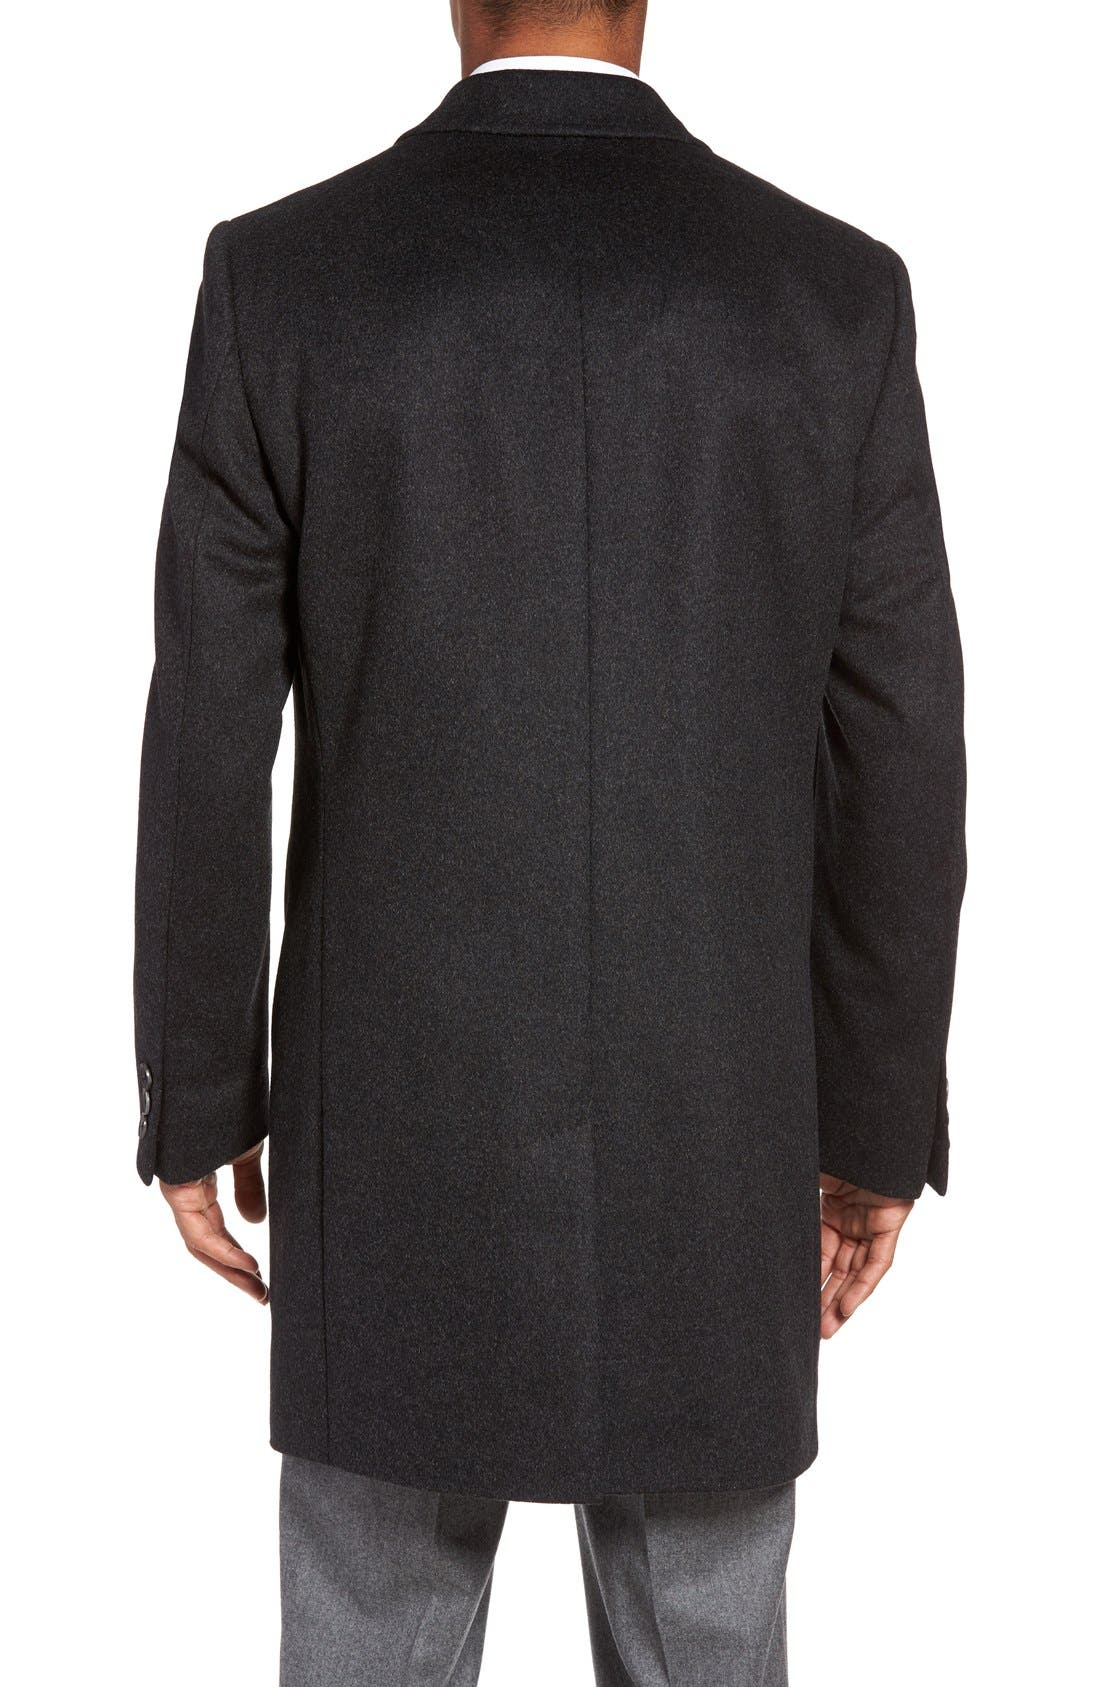 BOSS The Stratus Wool & Cashmere Overcoat,                             Alternate thumbnail 2, color,                             010